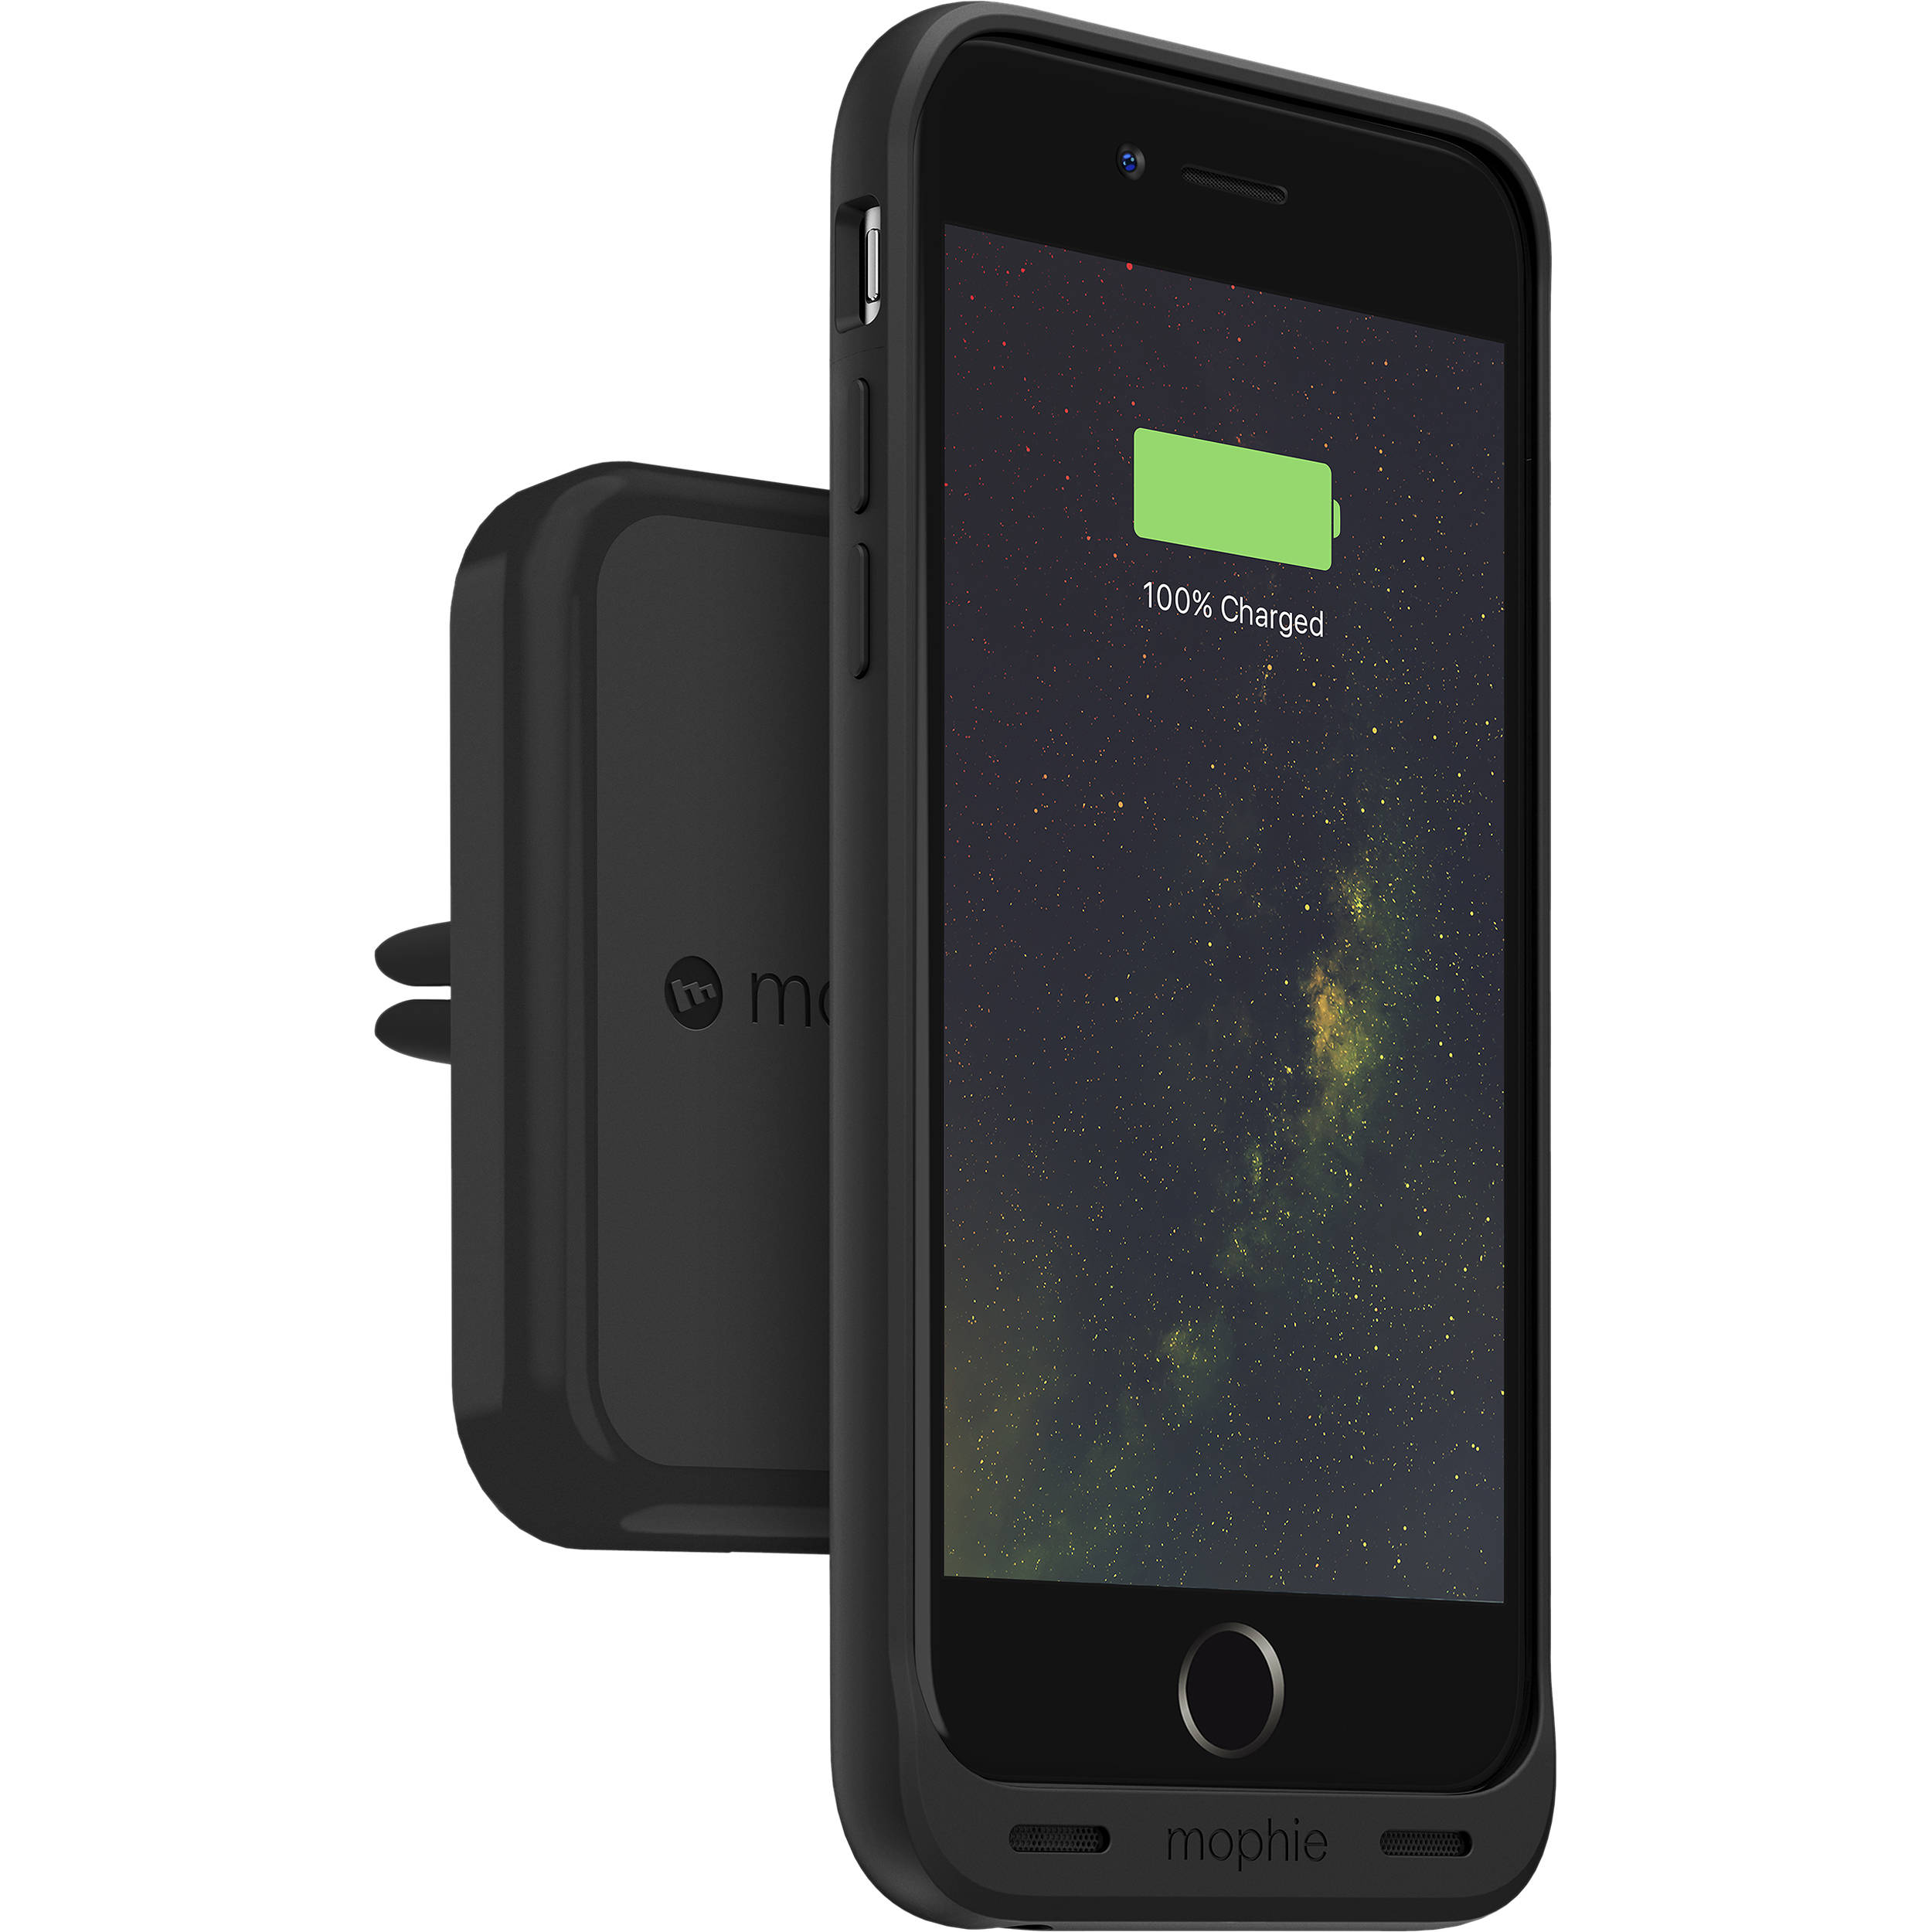 promo code 0502f 5a4ef mophie charge force vent mount 3452 B&H Photo Video